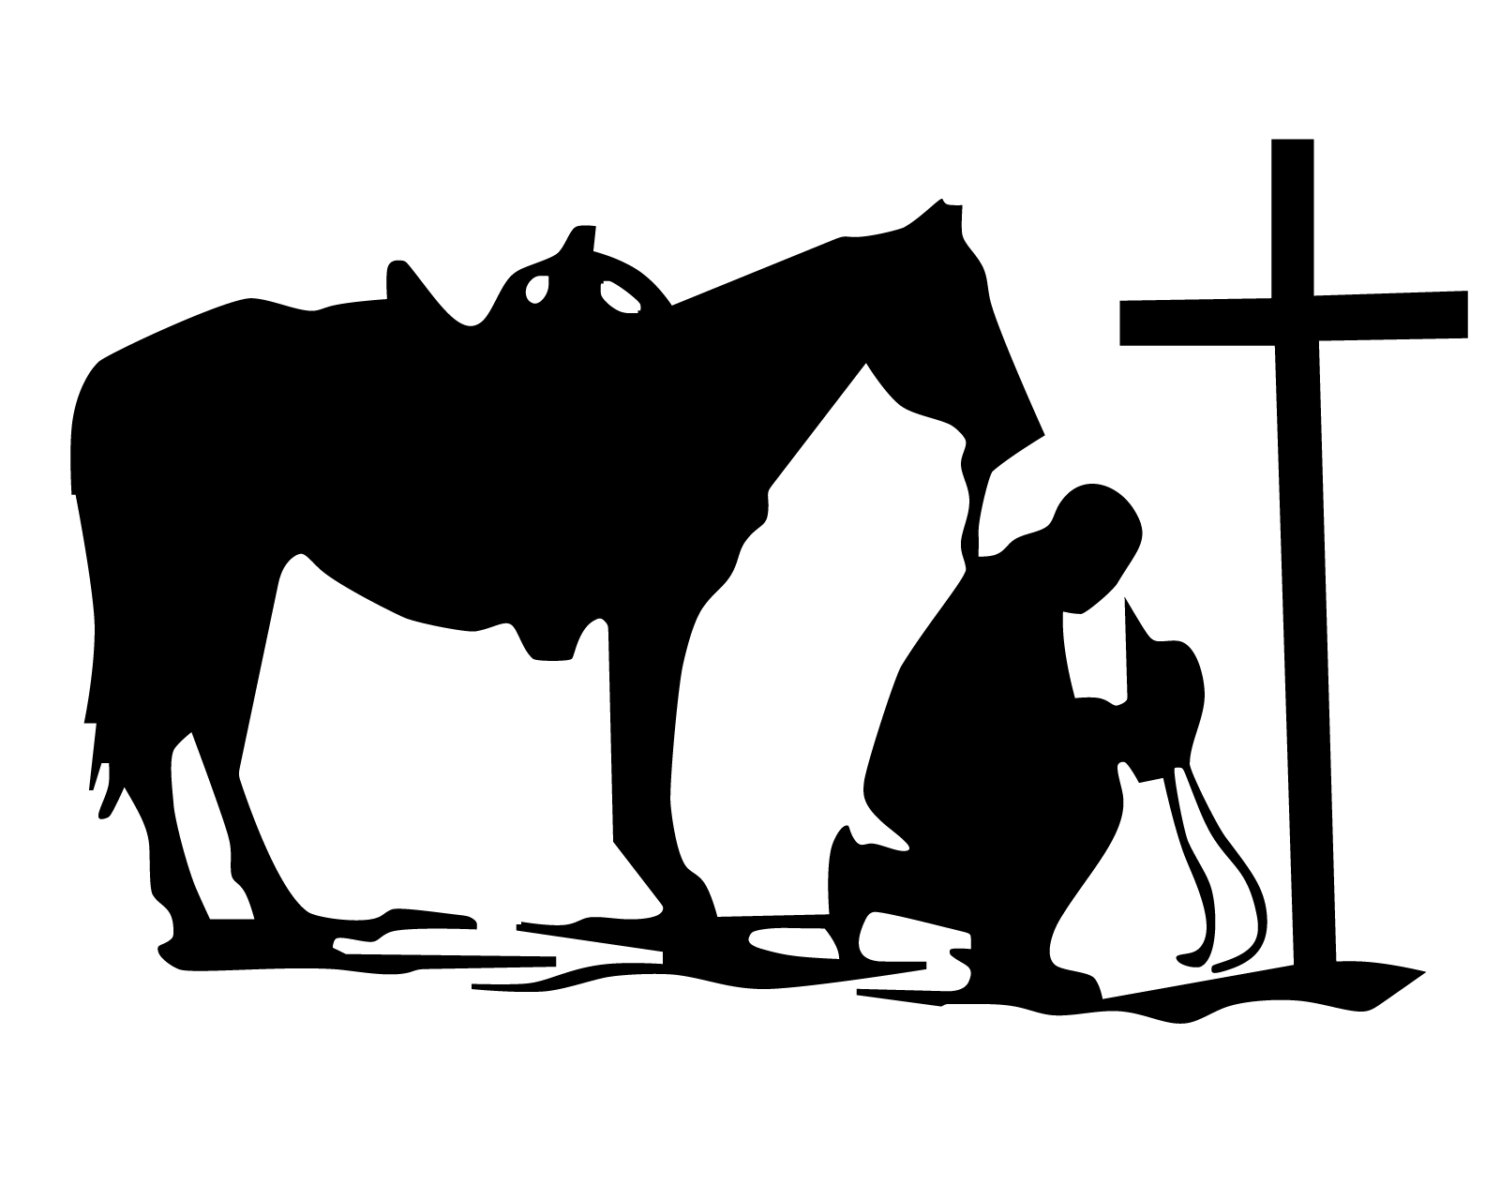 Praying cowboy silhouette clipart png free stock Free Christian Cowboy Cliparts, Download Free Clip Art, Free ... png free stock